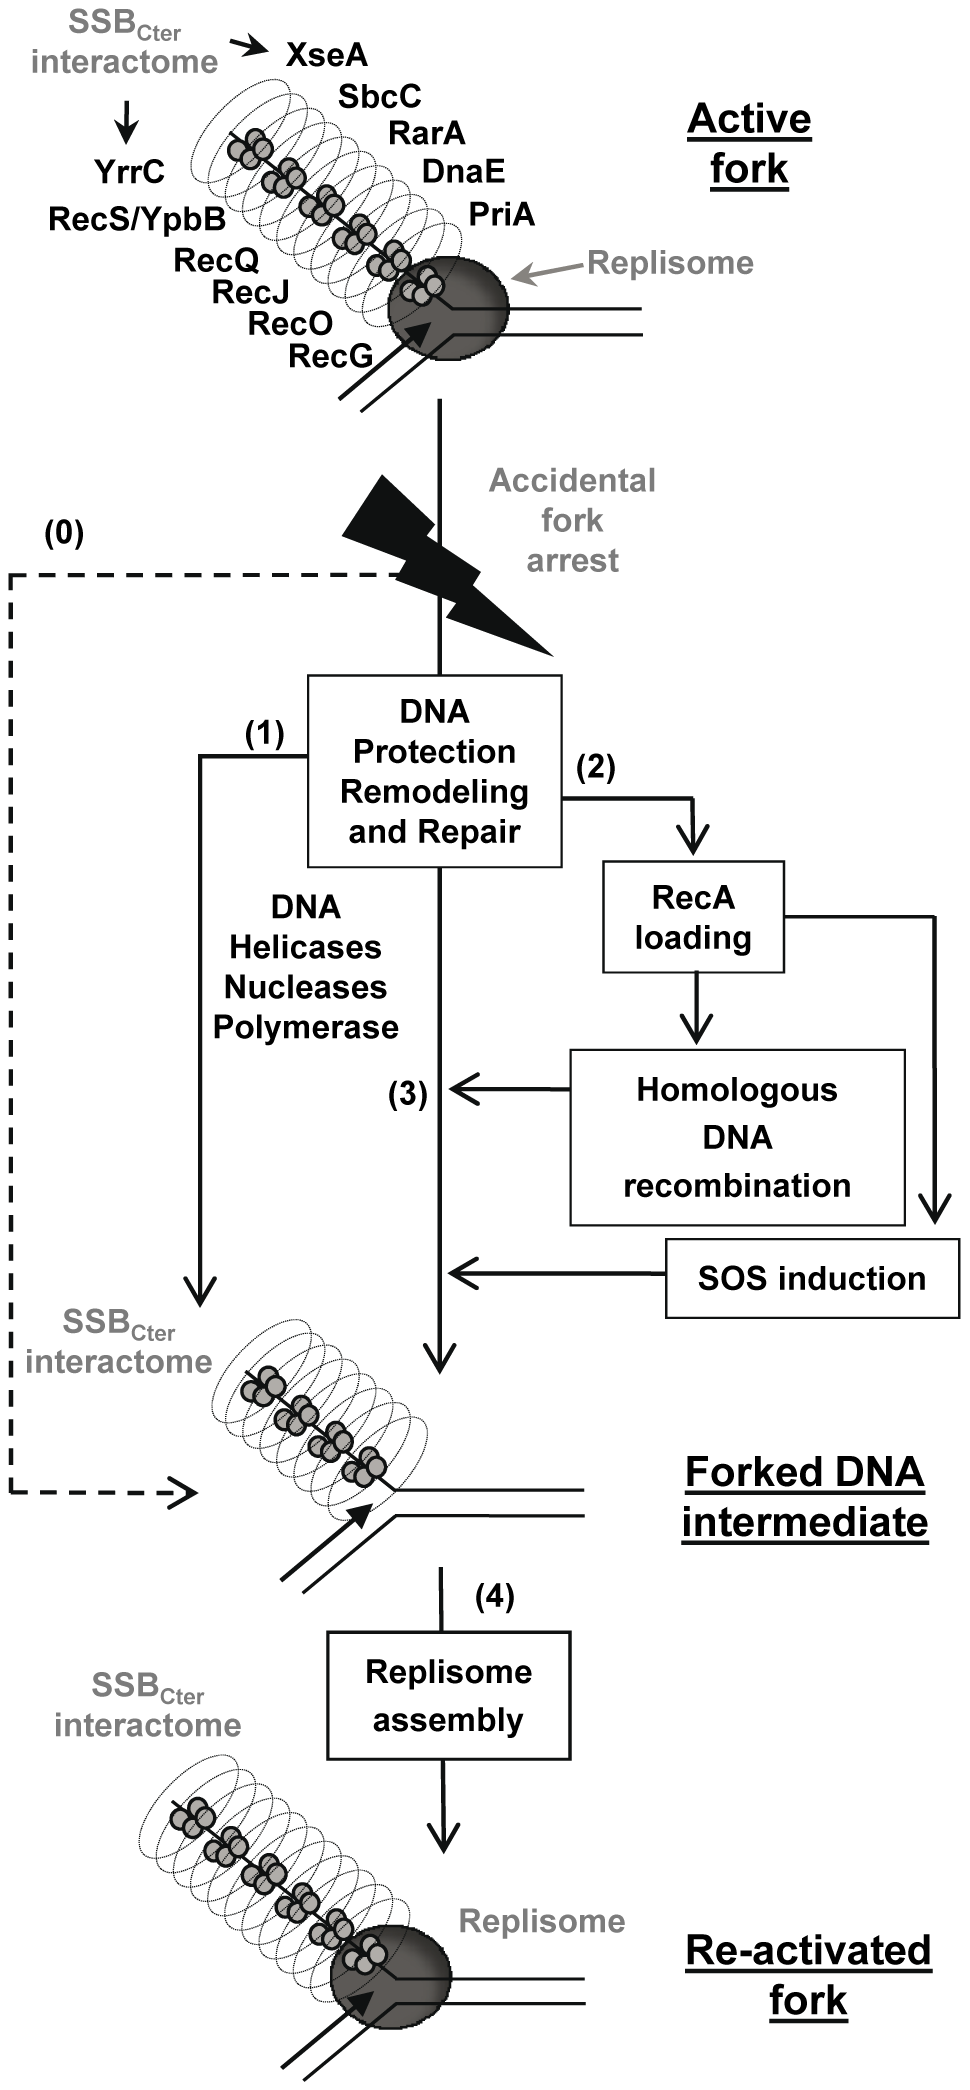 Model of the SSB<sub>Cter</sub> role in repair of damaged chromosomal DNA replication forks.